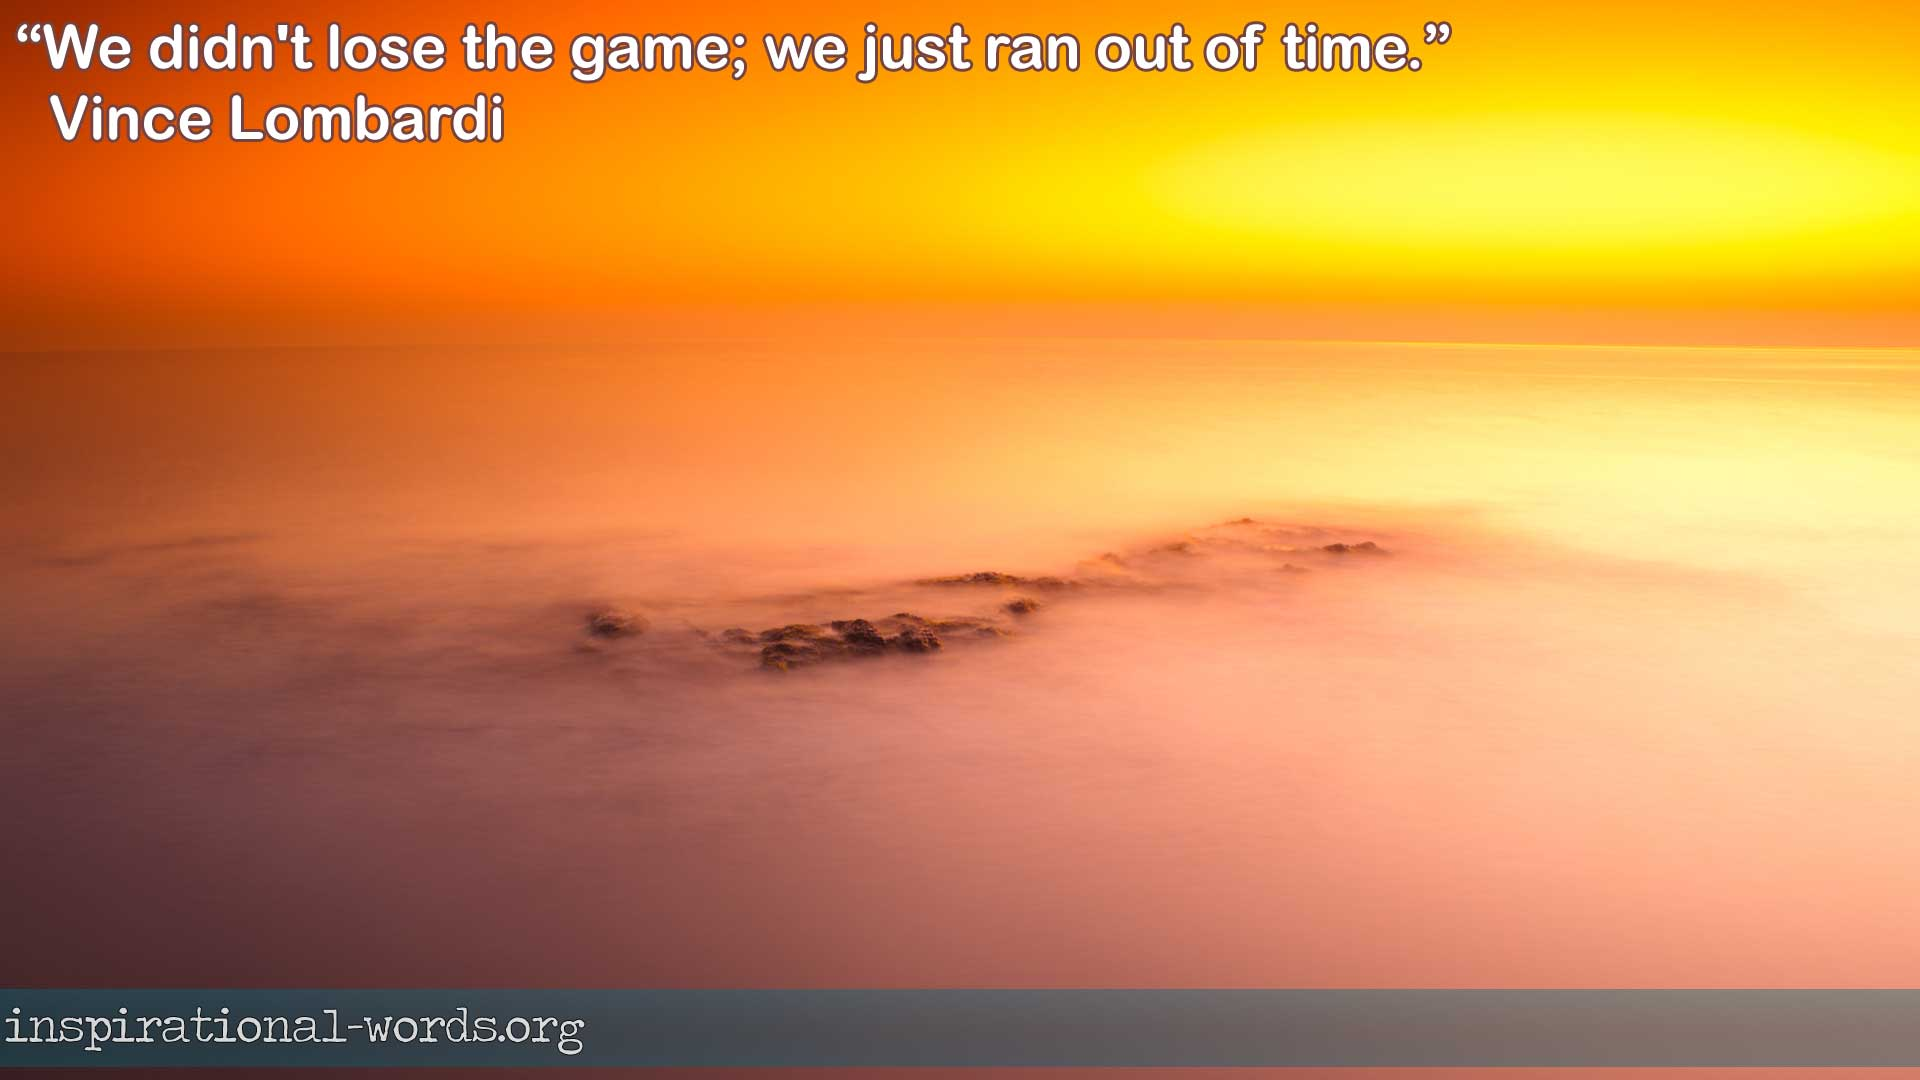 Vince Lombardi inspirational wallpaper